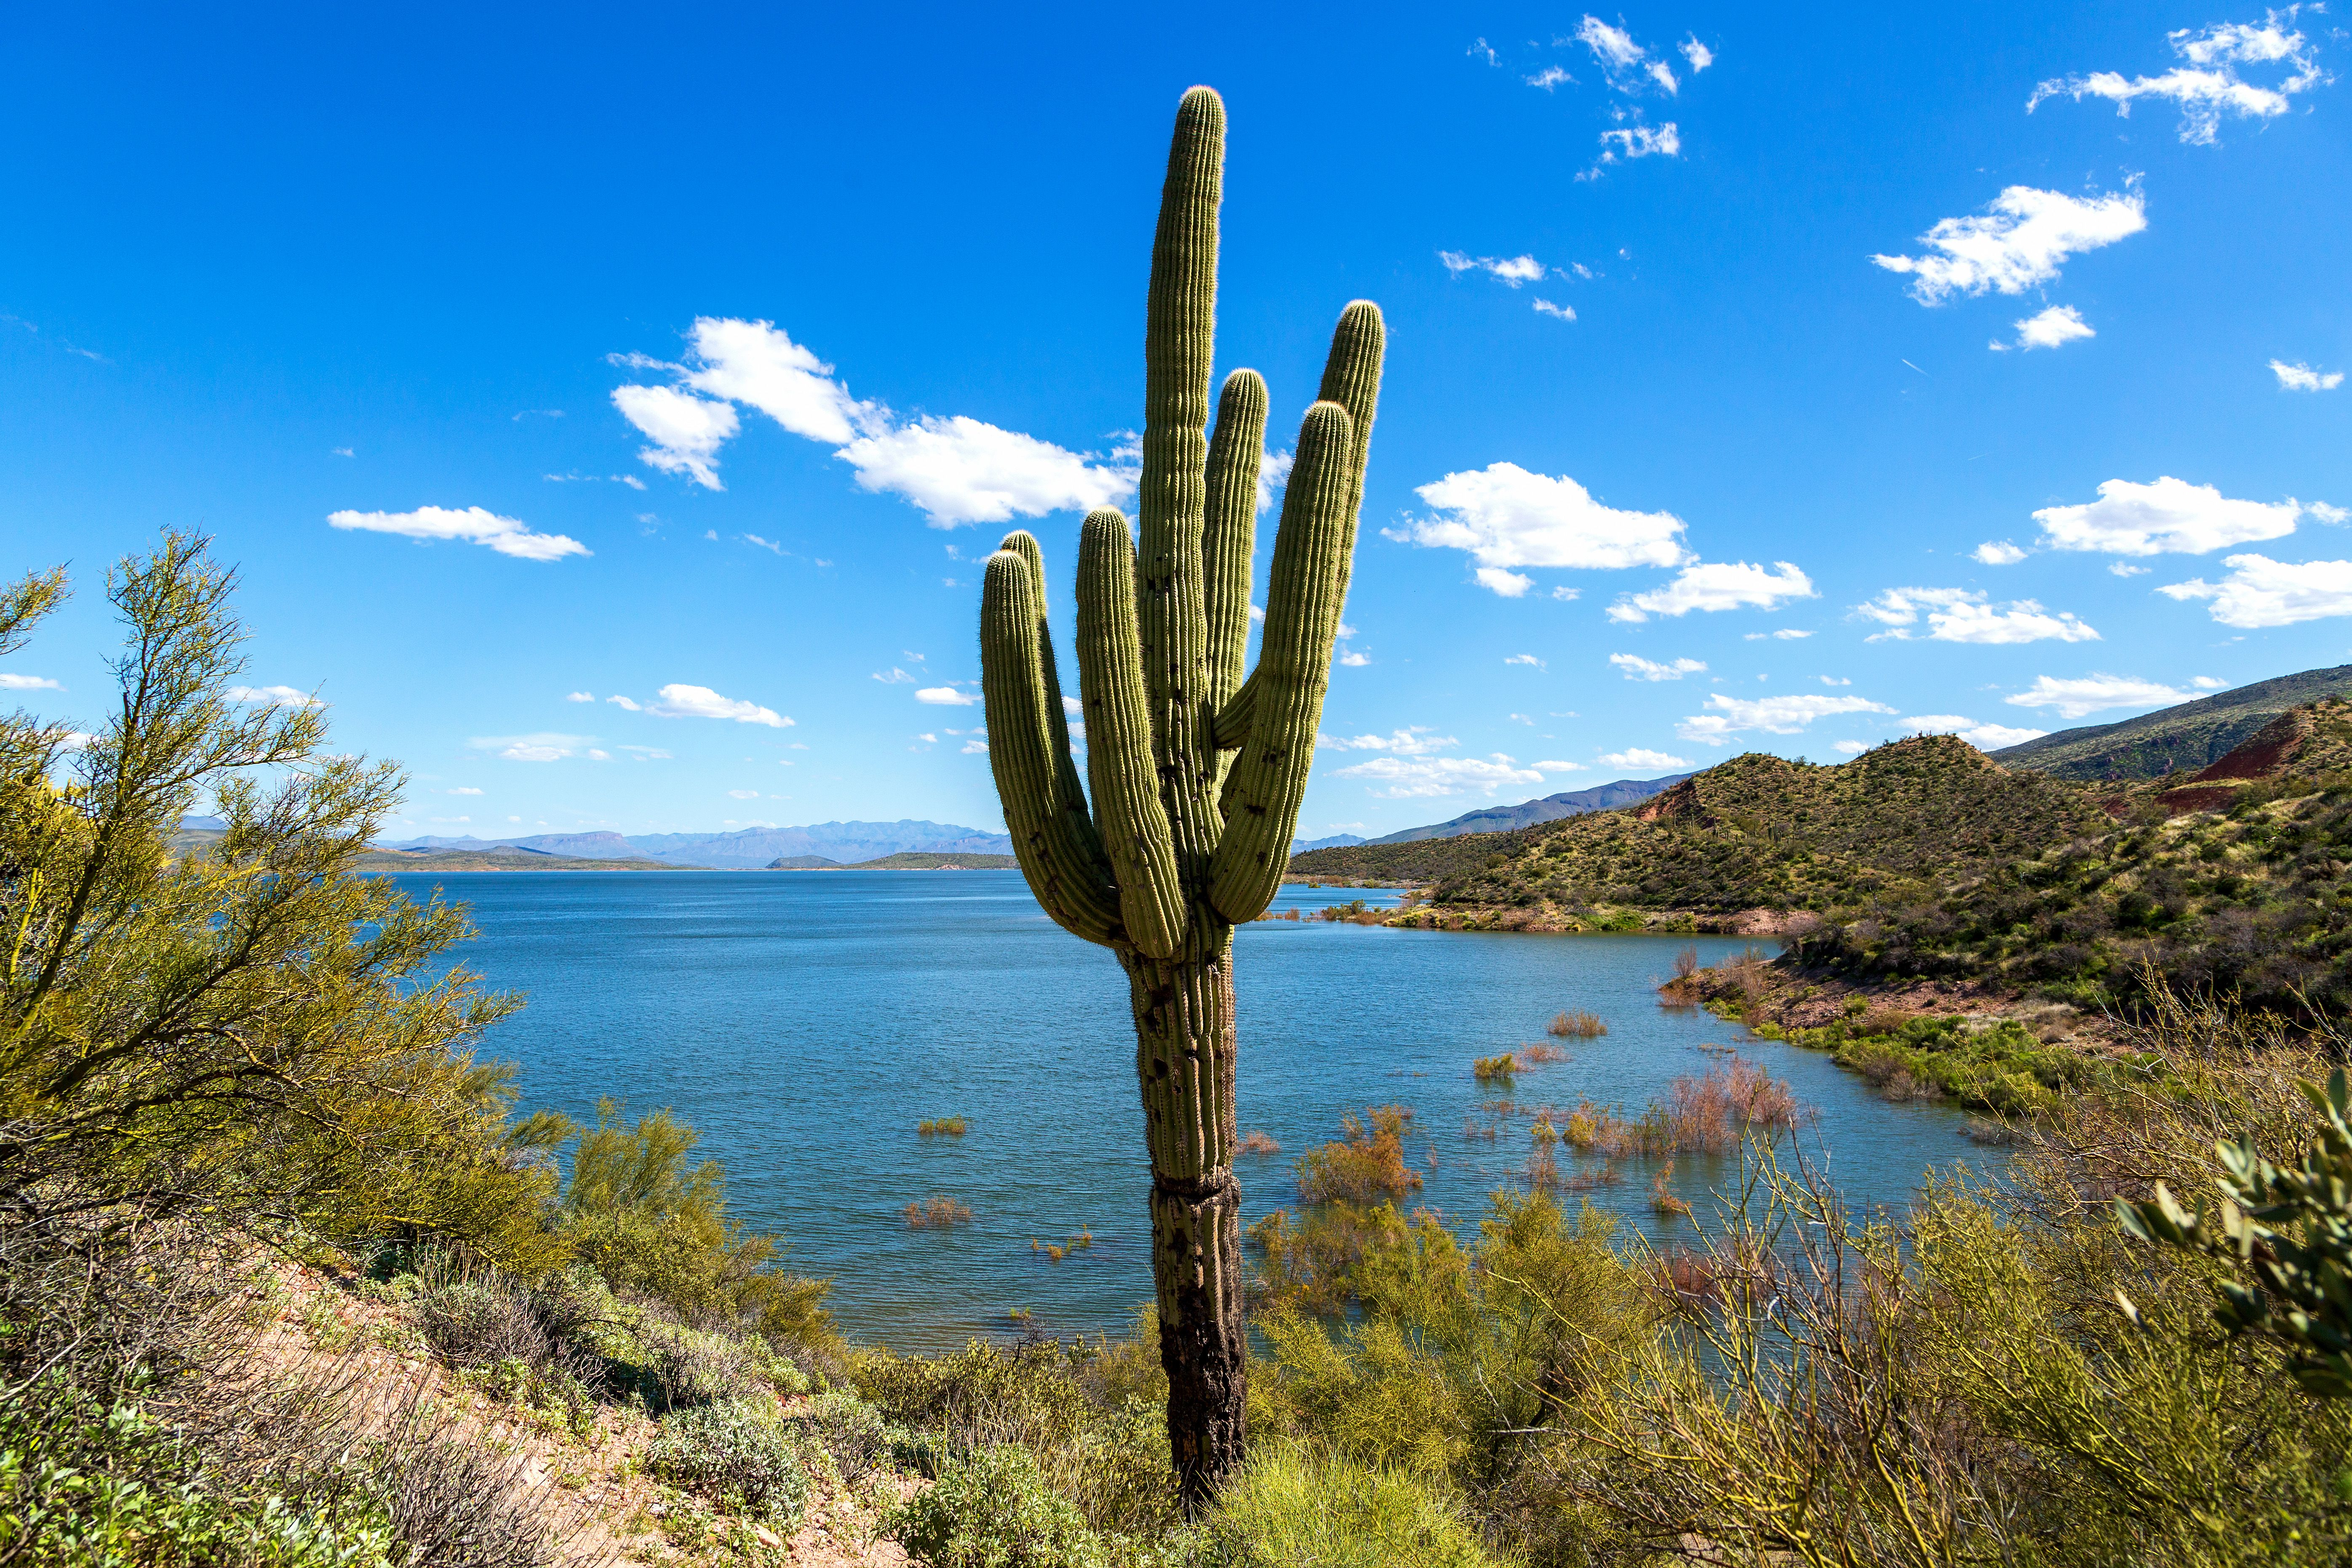 The Complete Guide to Arizona's Theodore Roosevelt Lake